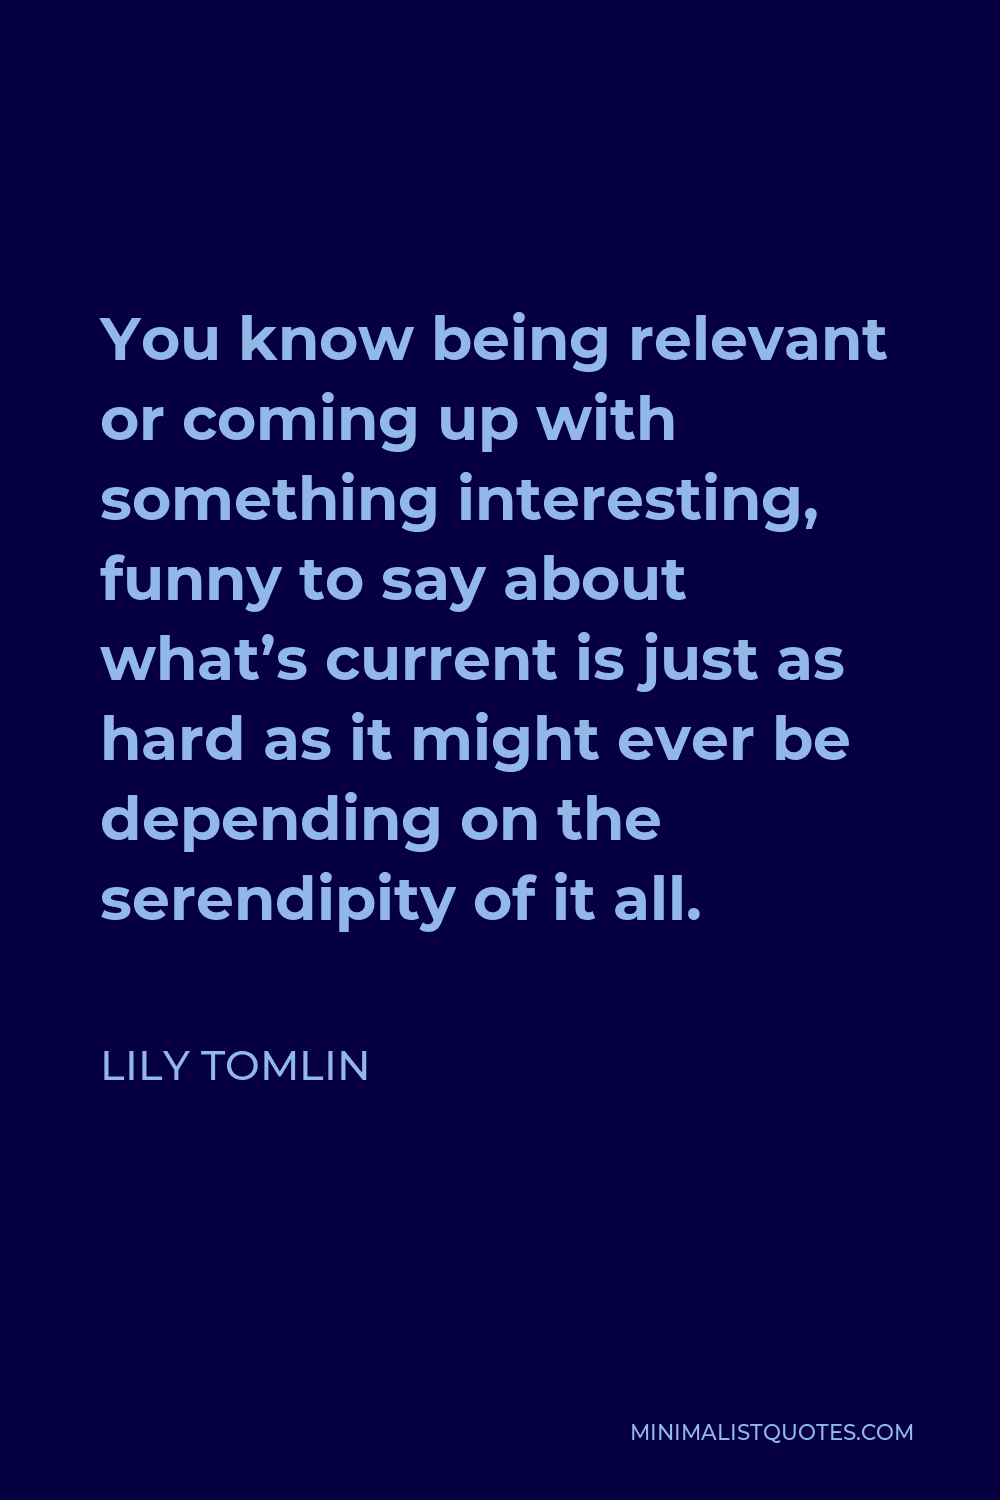 Lily Tomlin Quote - You know being relevant or coming up with something interesting, funny to say about what's current is just as hard as it might ever be depending on the serendipity of it all.